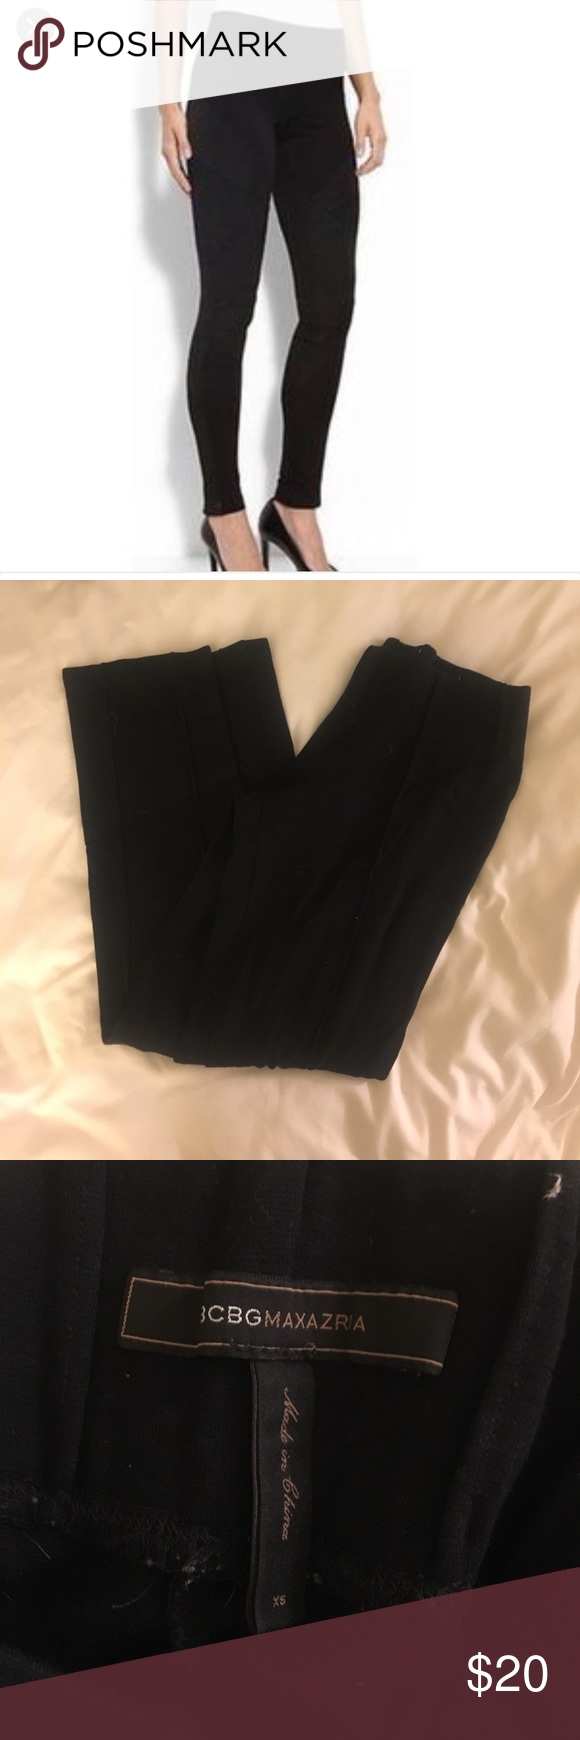 "BCBGMaxazria legging Black cropped BCBGMaxazria legging. Size XS. I'm 5'6"" and they are just above ankle on me. Thick enough to wear to work! BCBGMaxAzria Pants Leggings"